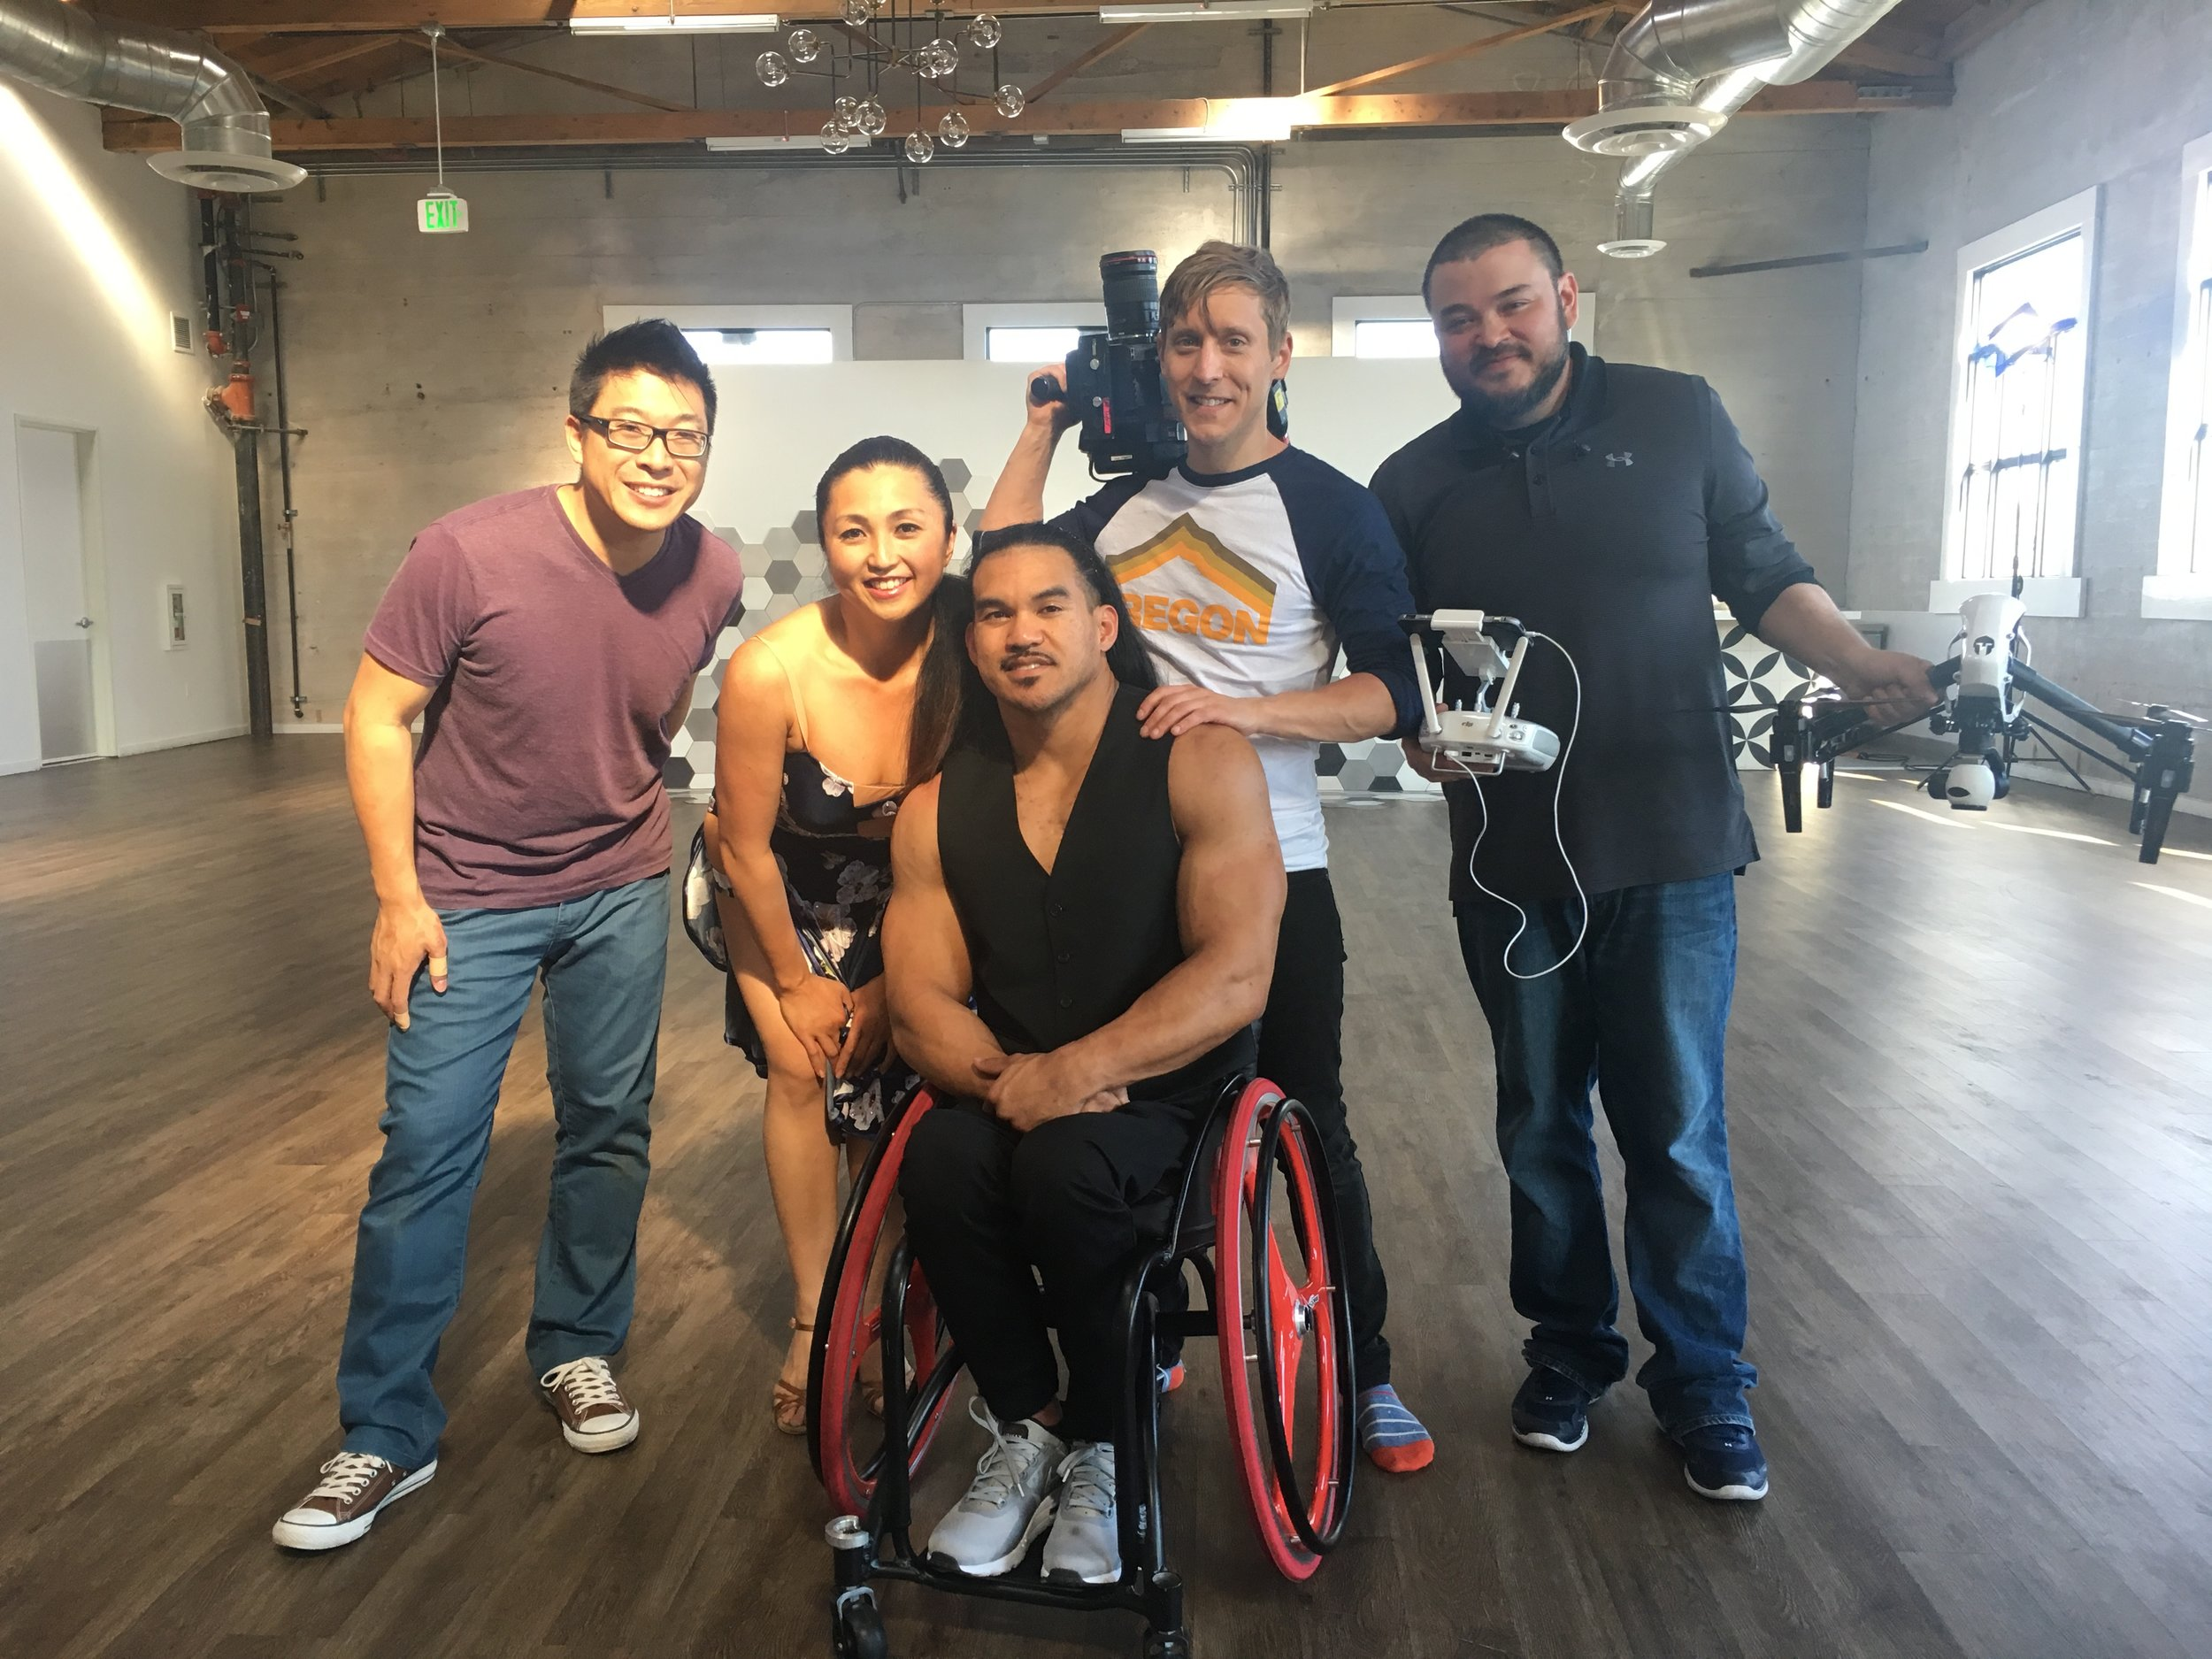 Behind the scenes with the amazing storytellers of  Only Today : Raymond Tsang, Zippy Etzel, Zac Arenas, and Joyce Tsang (not pictured)